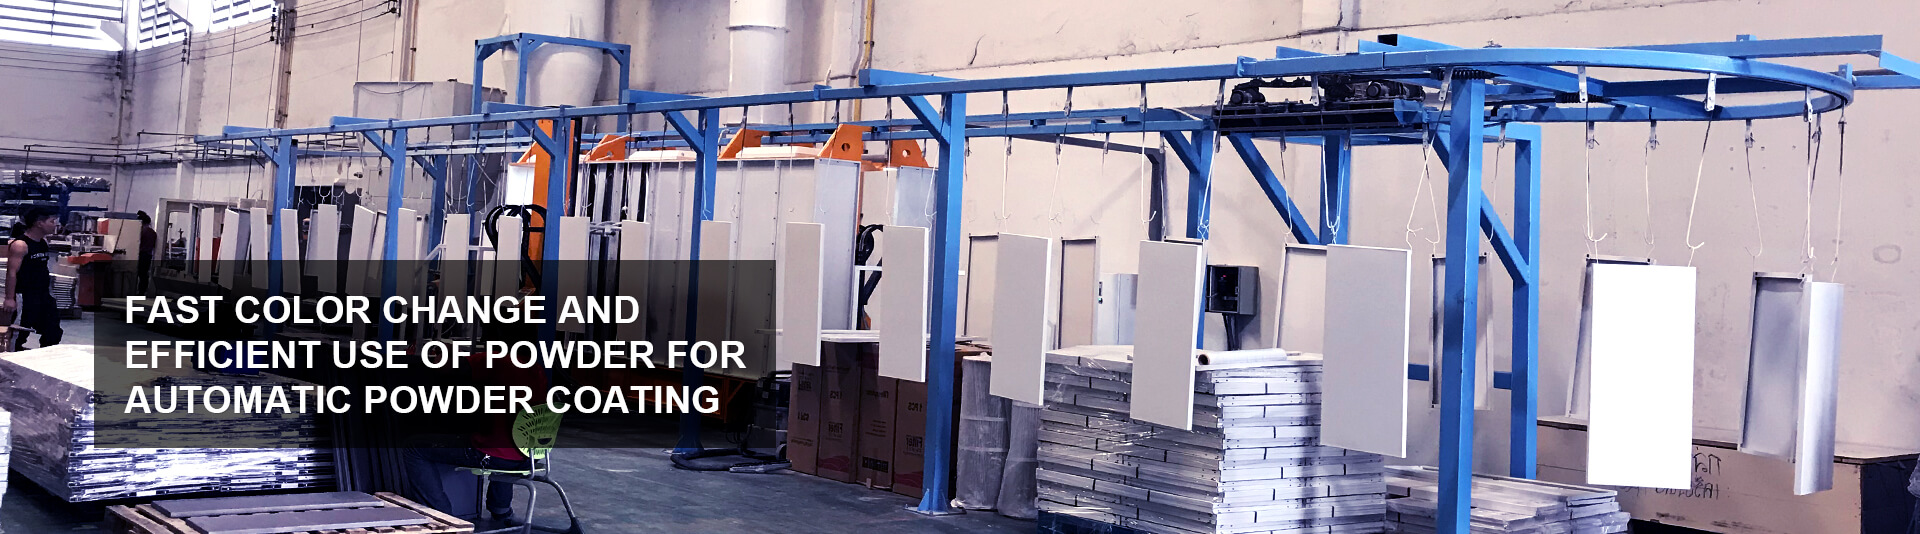 Powder Coating Application Equipment